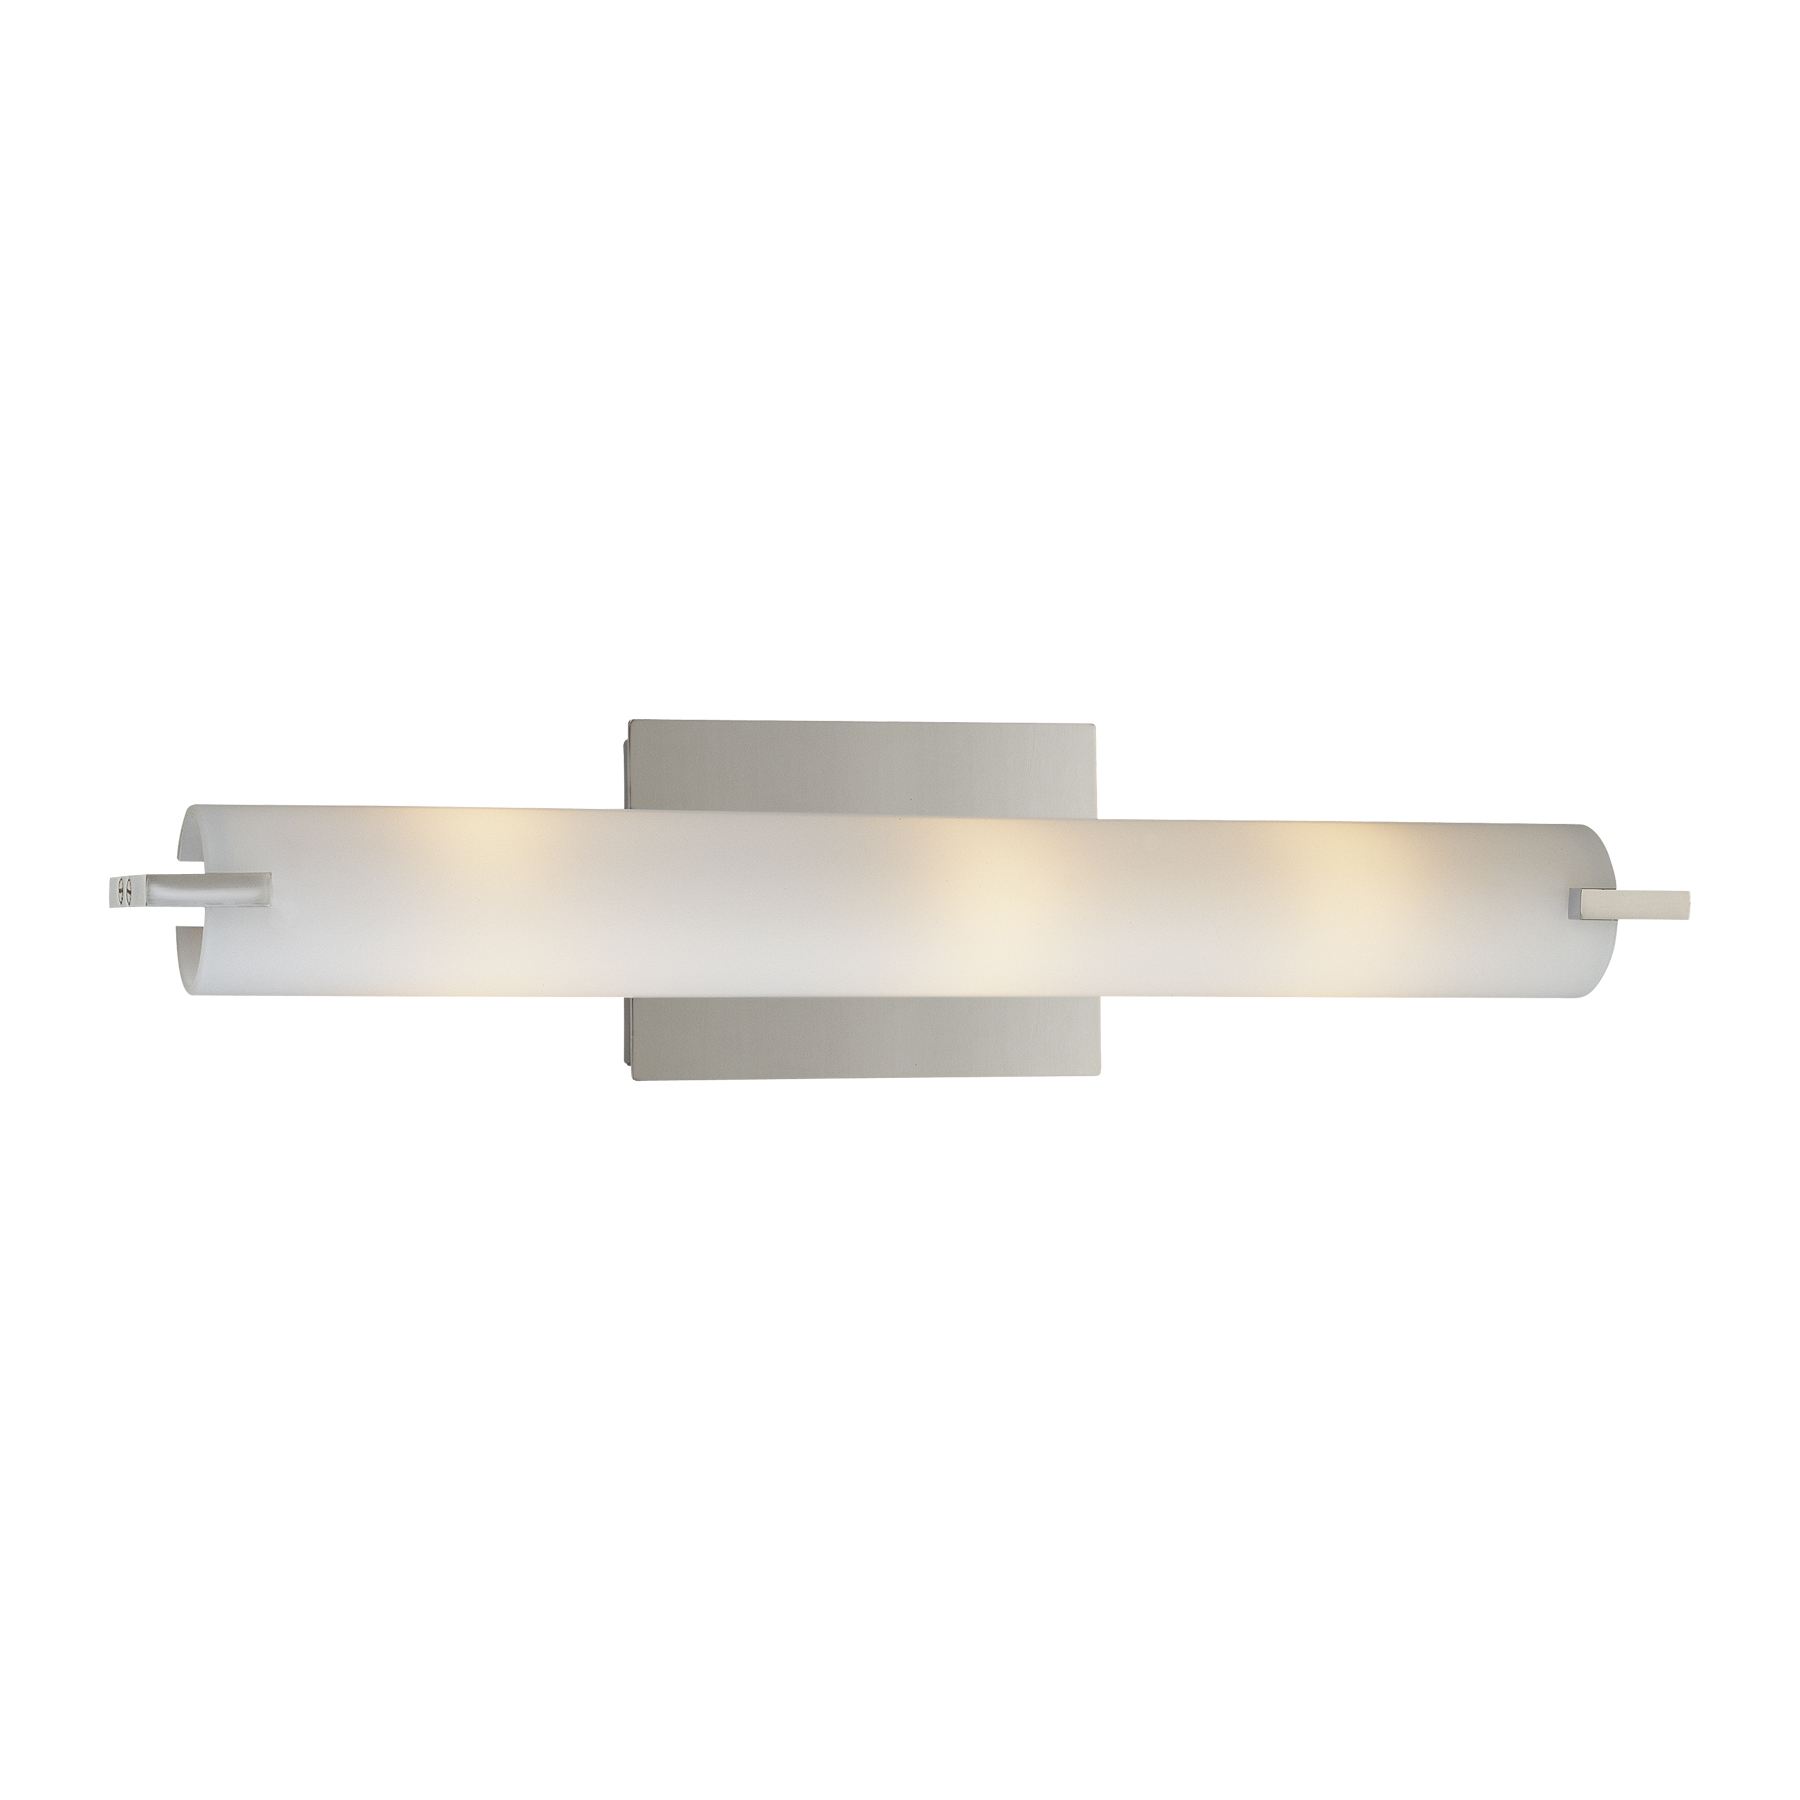 Tube Light Bath Bar By George Kovacs | P5044 077